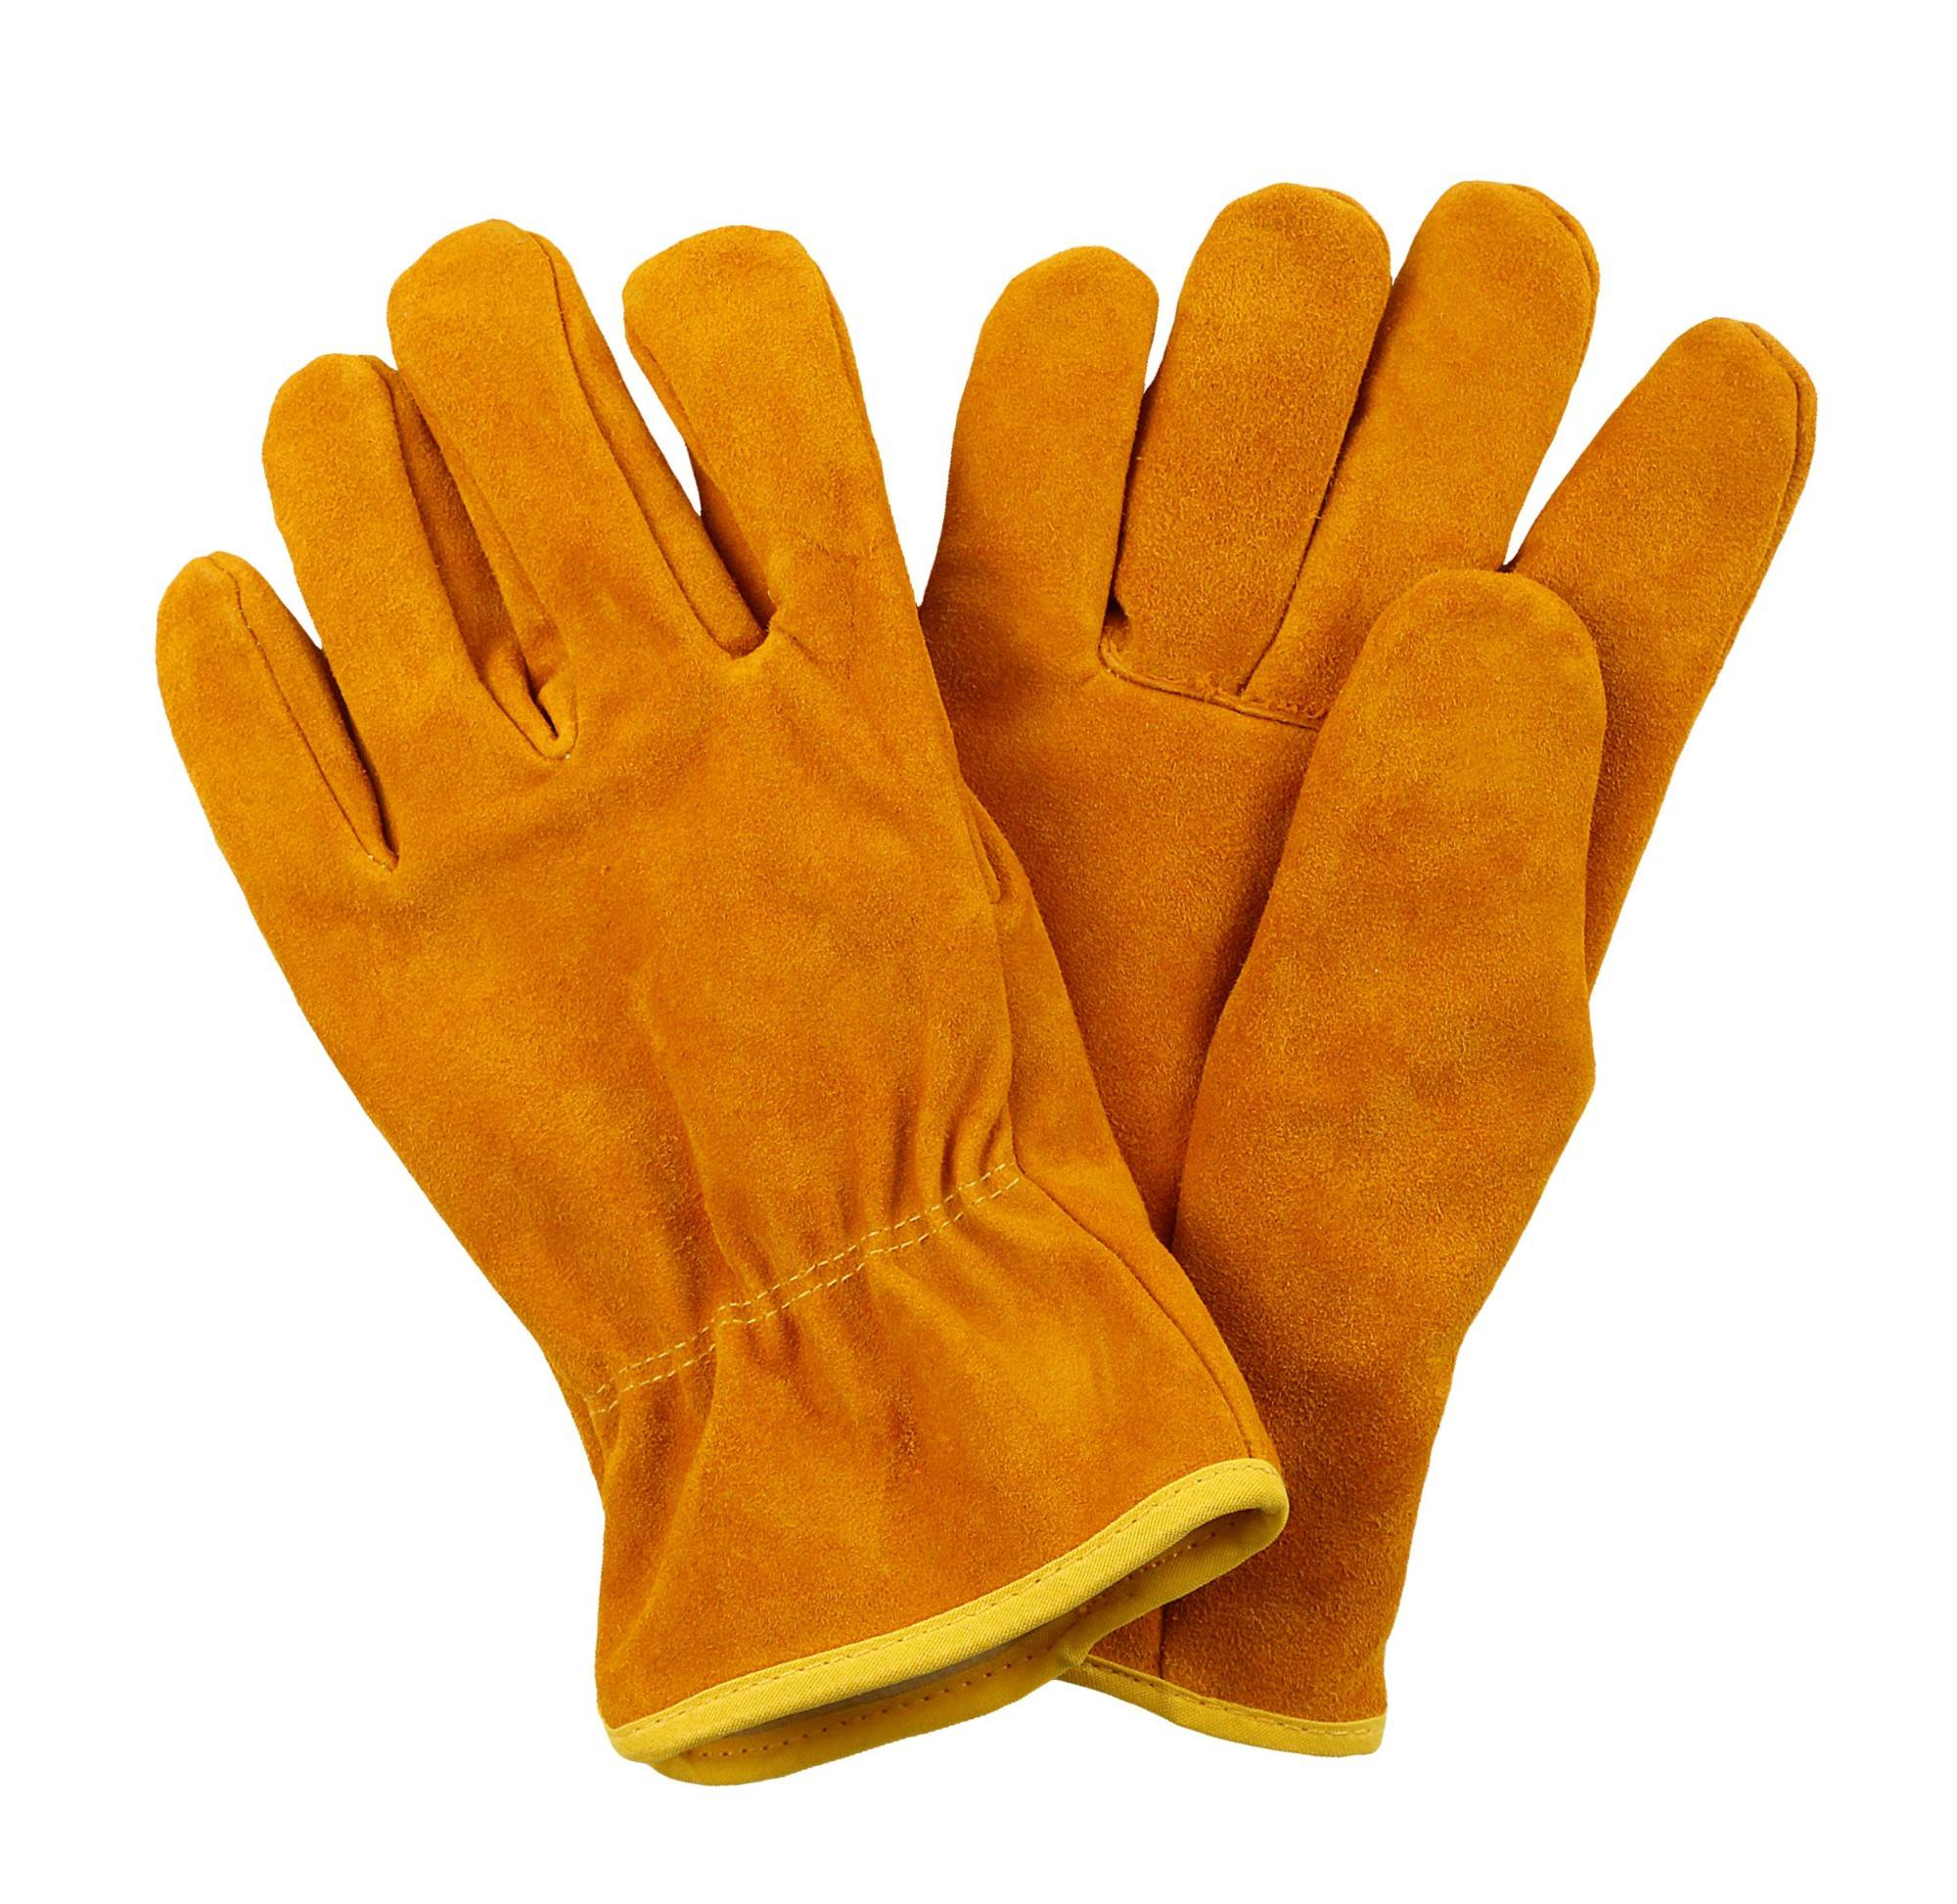 KIM YUAN Cowhide Winter Warm Windproof Security Protection Working Gloves for Construction/Driver/Yard work, Men&Women